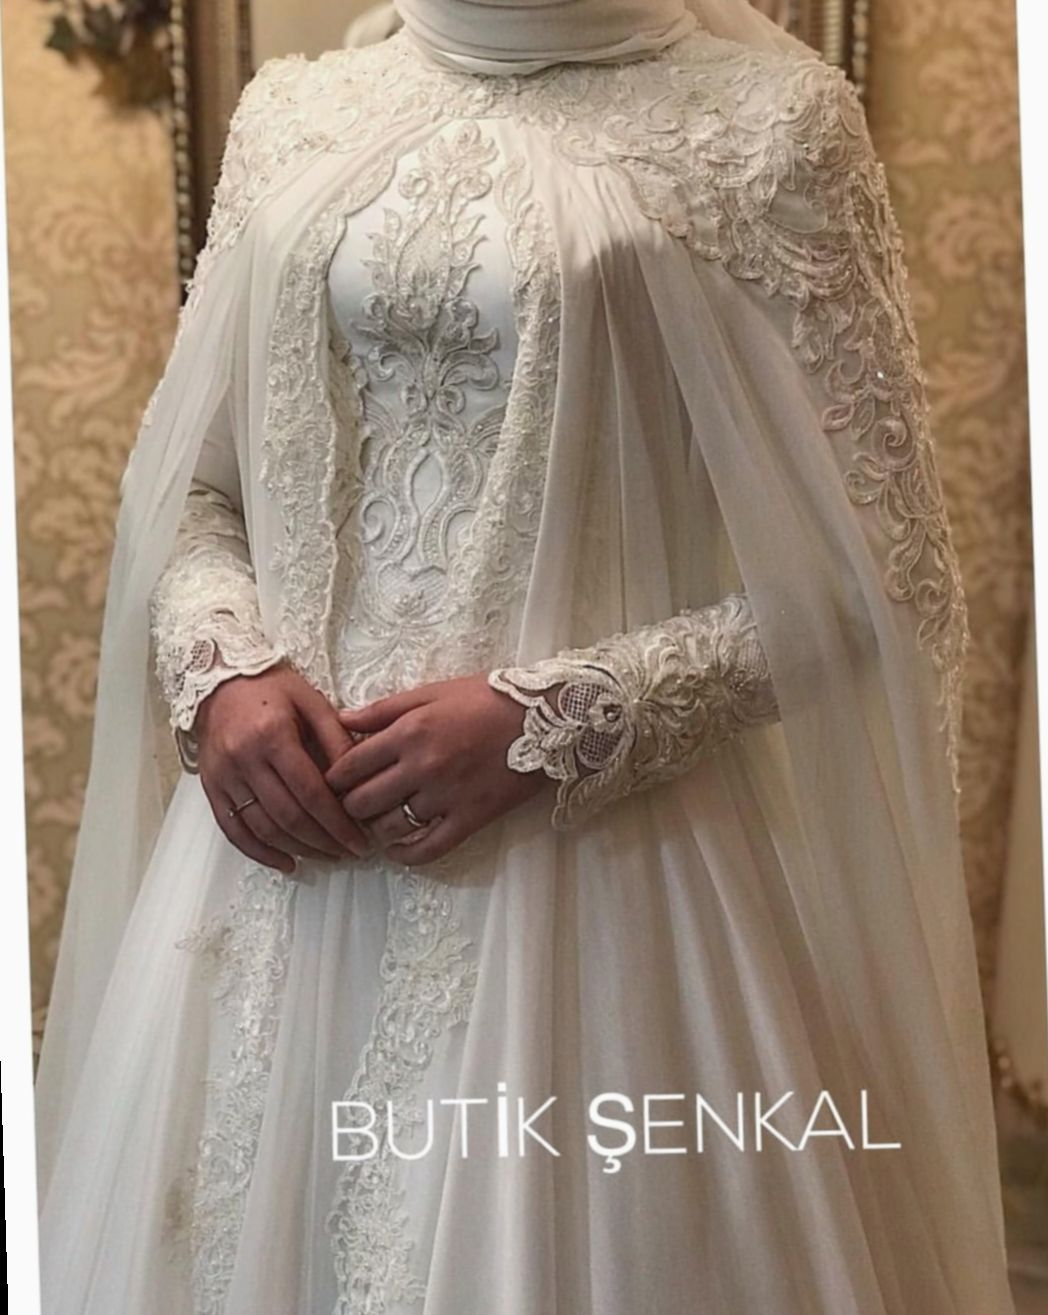 Dress Modest Formal Lace Weddings Hairstyle Outfits Glam Gaun Pengantin Sederhana Pakaian Pernikahan Gaun Pengantin Putih